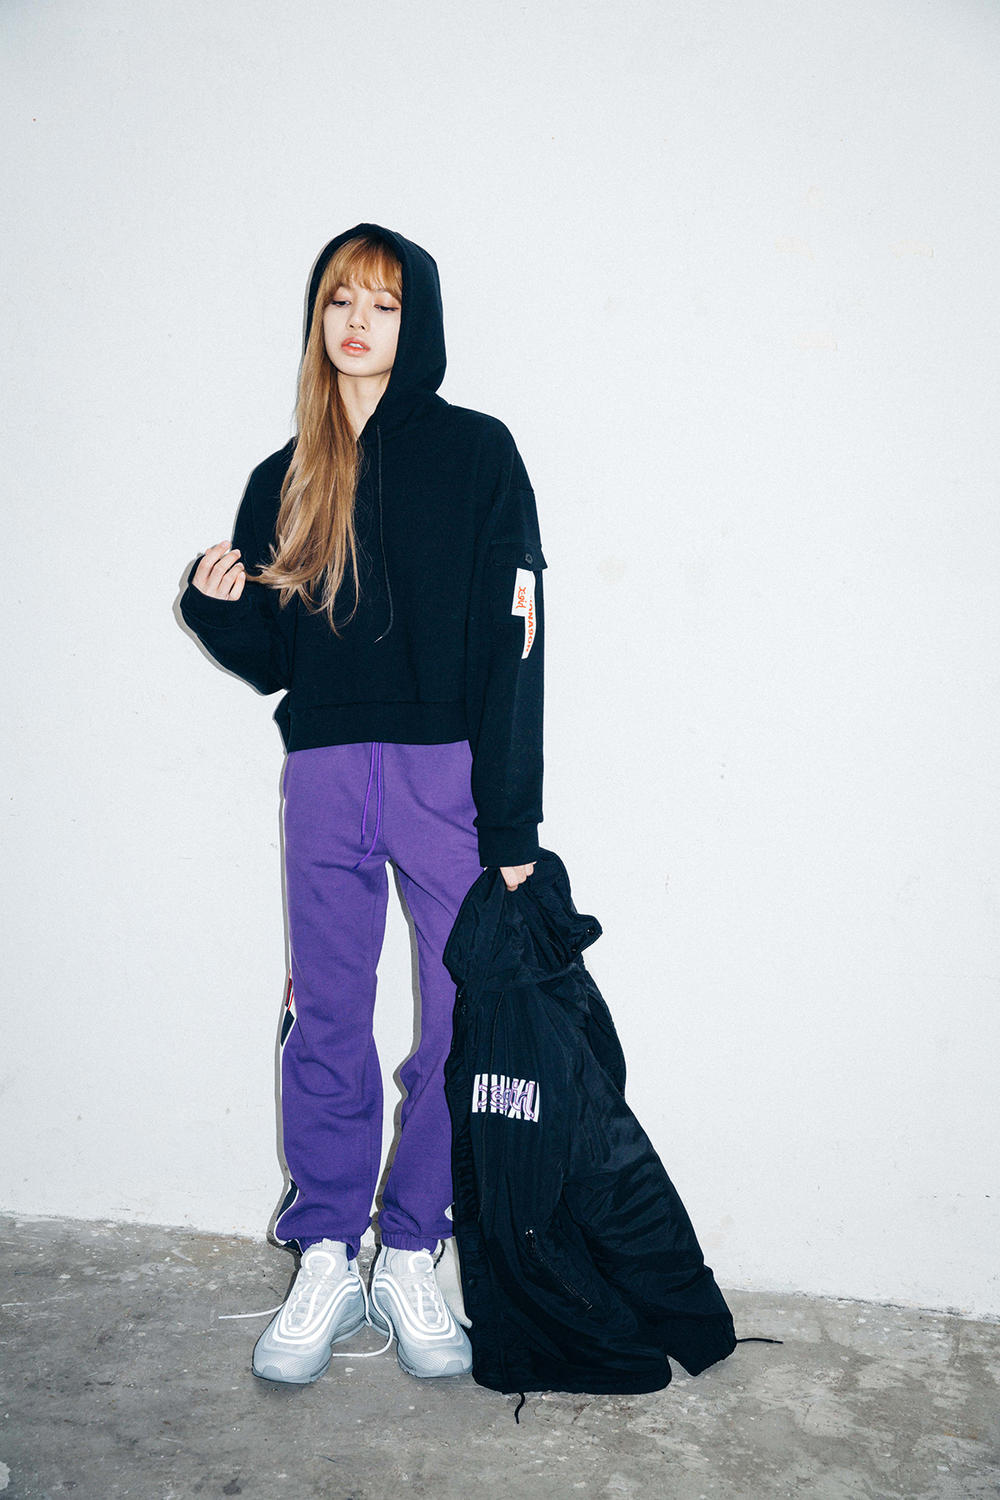 X-Girl Nonagon Blackpink Lisa Campaign Collaboration K-Pop Black Hoodie Purple Sweat Pants